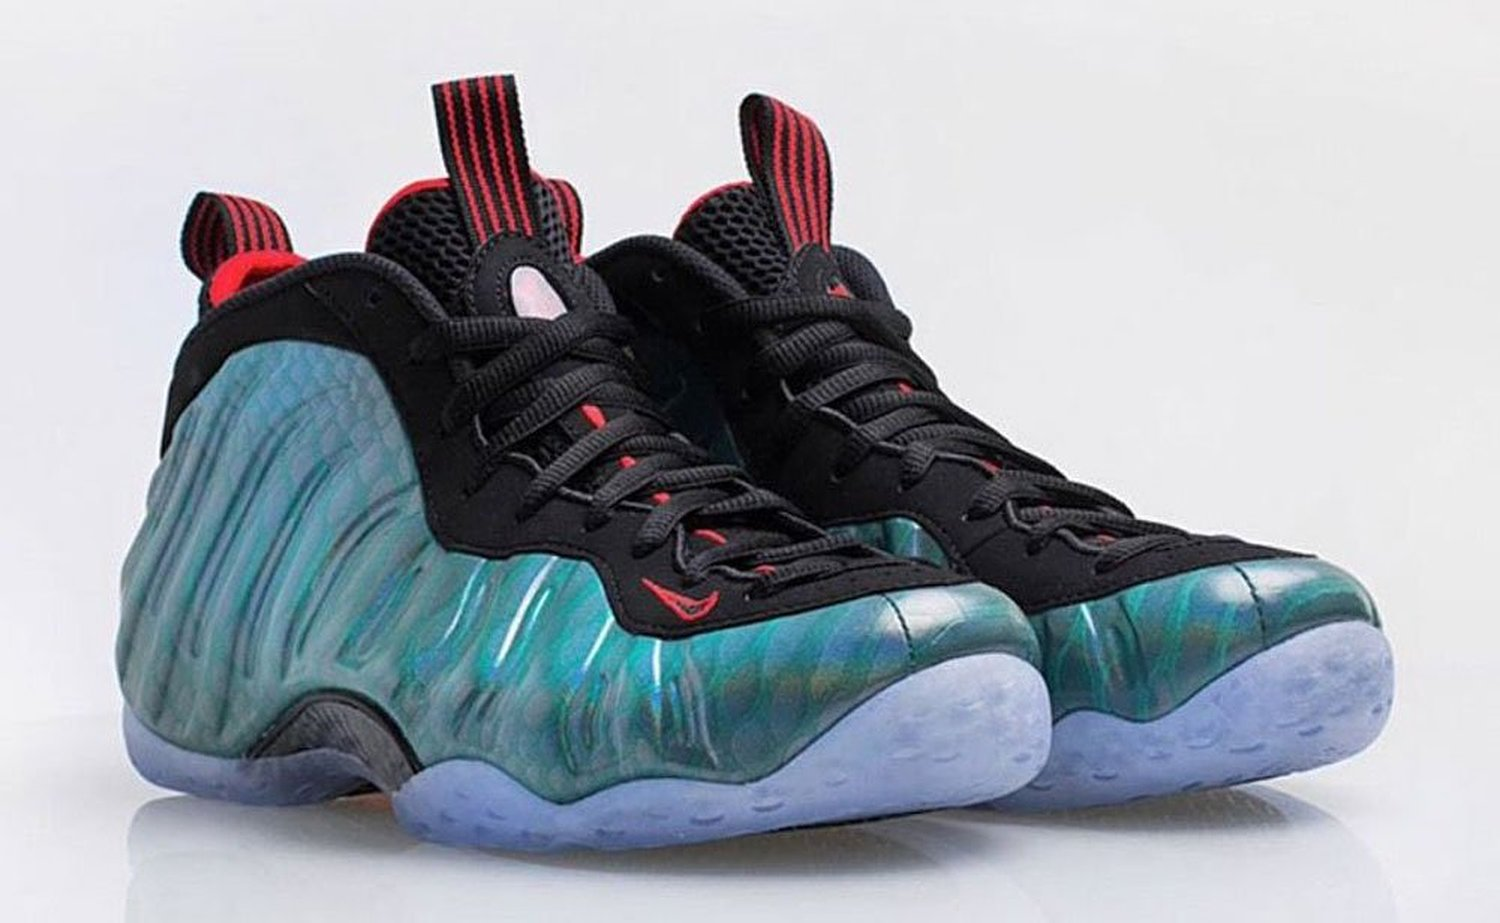 8548ab14a43 Get Quotations · NIKE Little Posite One (GS)  Gone Fishing  - 644791-300